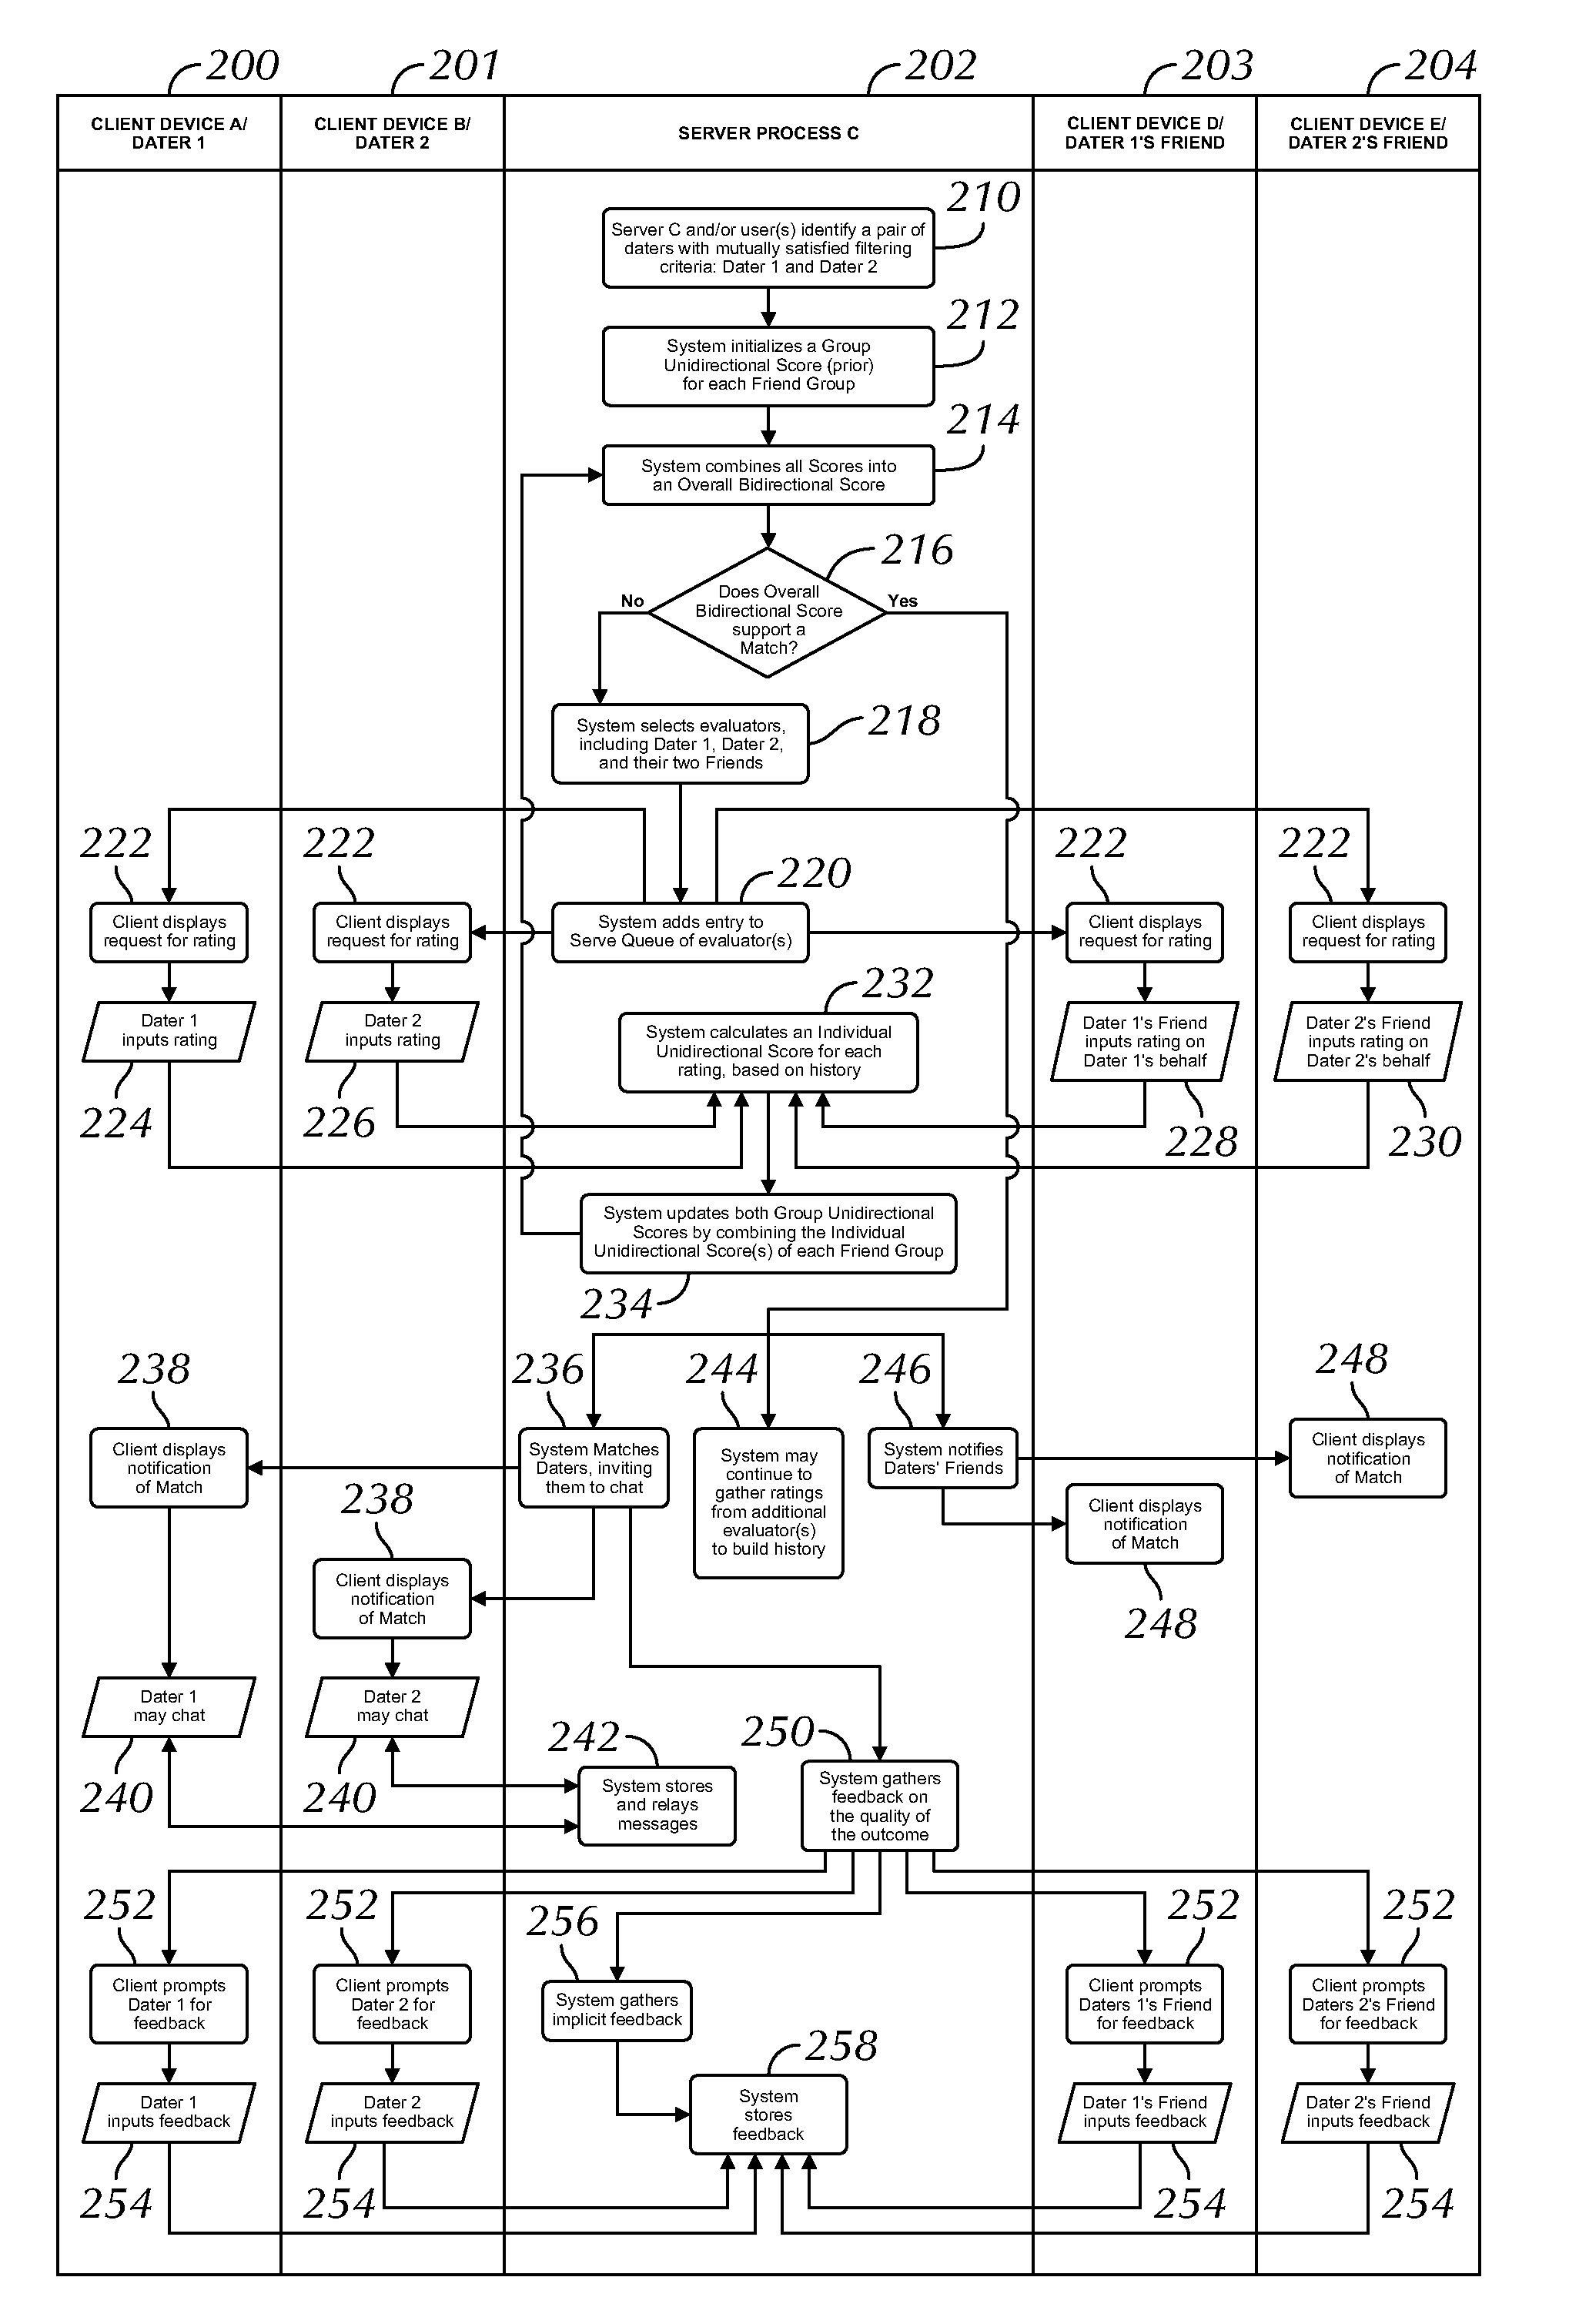 Electronic System to Romantically Match People by Collecting Input From Third Parties  - US-2017300935-A1